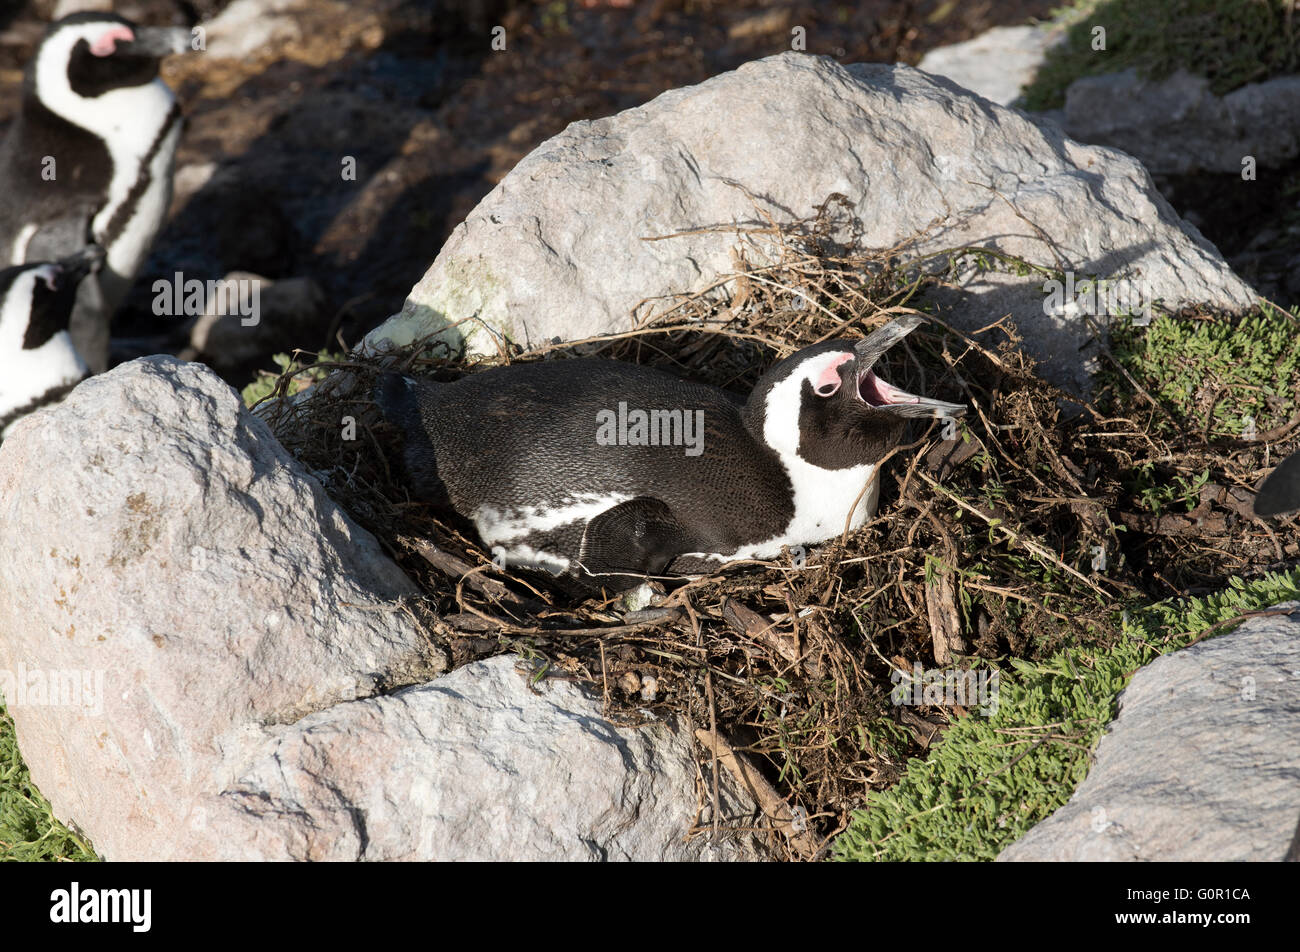 African penguin with beak open sitting on a nest at Betty's Bay in the Western Cape South Africa - Stock Image